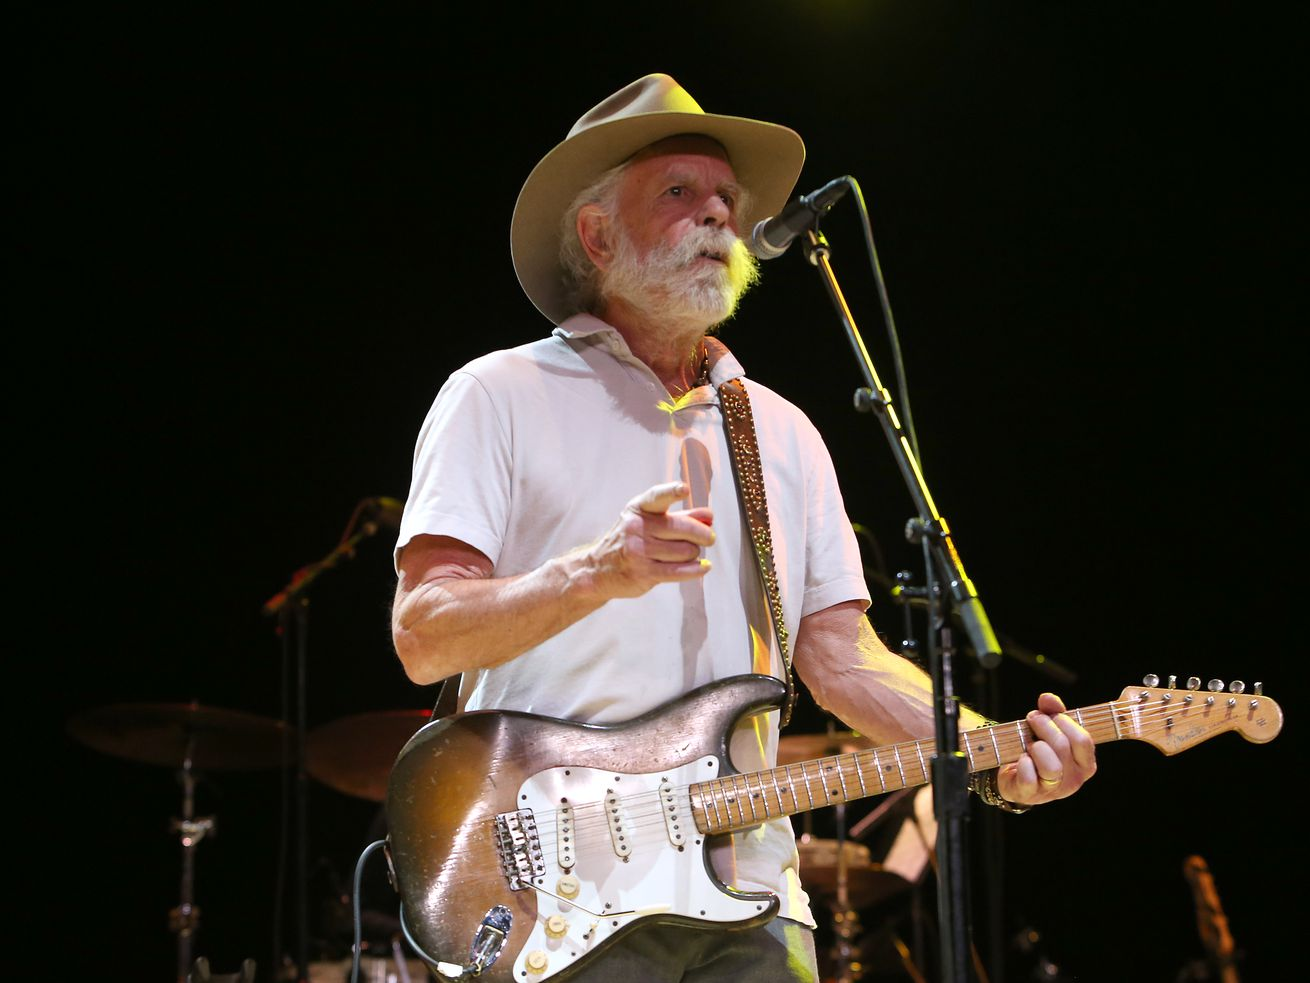 Bob Weir (pictured in 2018 in Los Angeles) and the rest of Dead & Company will perform at Wrigley Field on Sept. 17-18 as part of their 2021 tour.